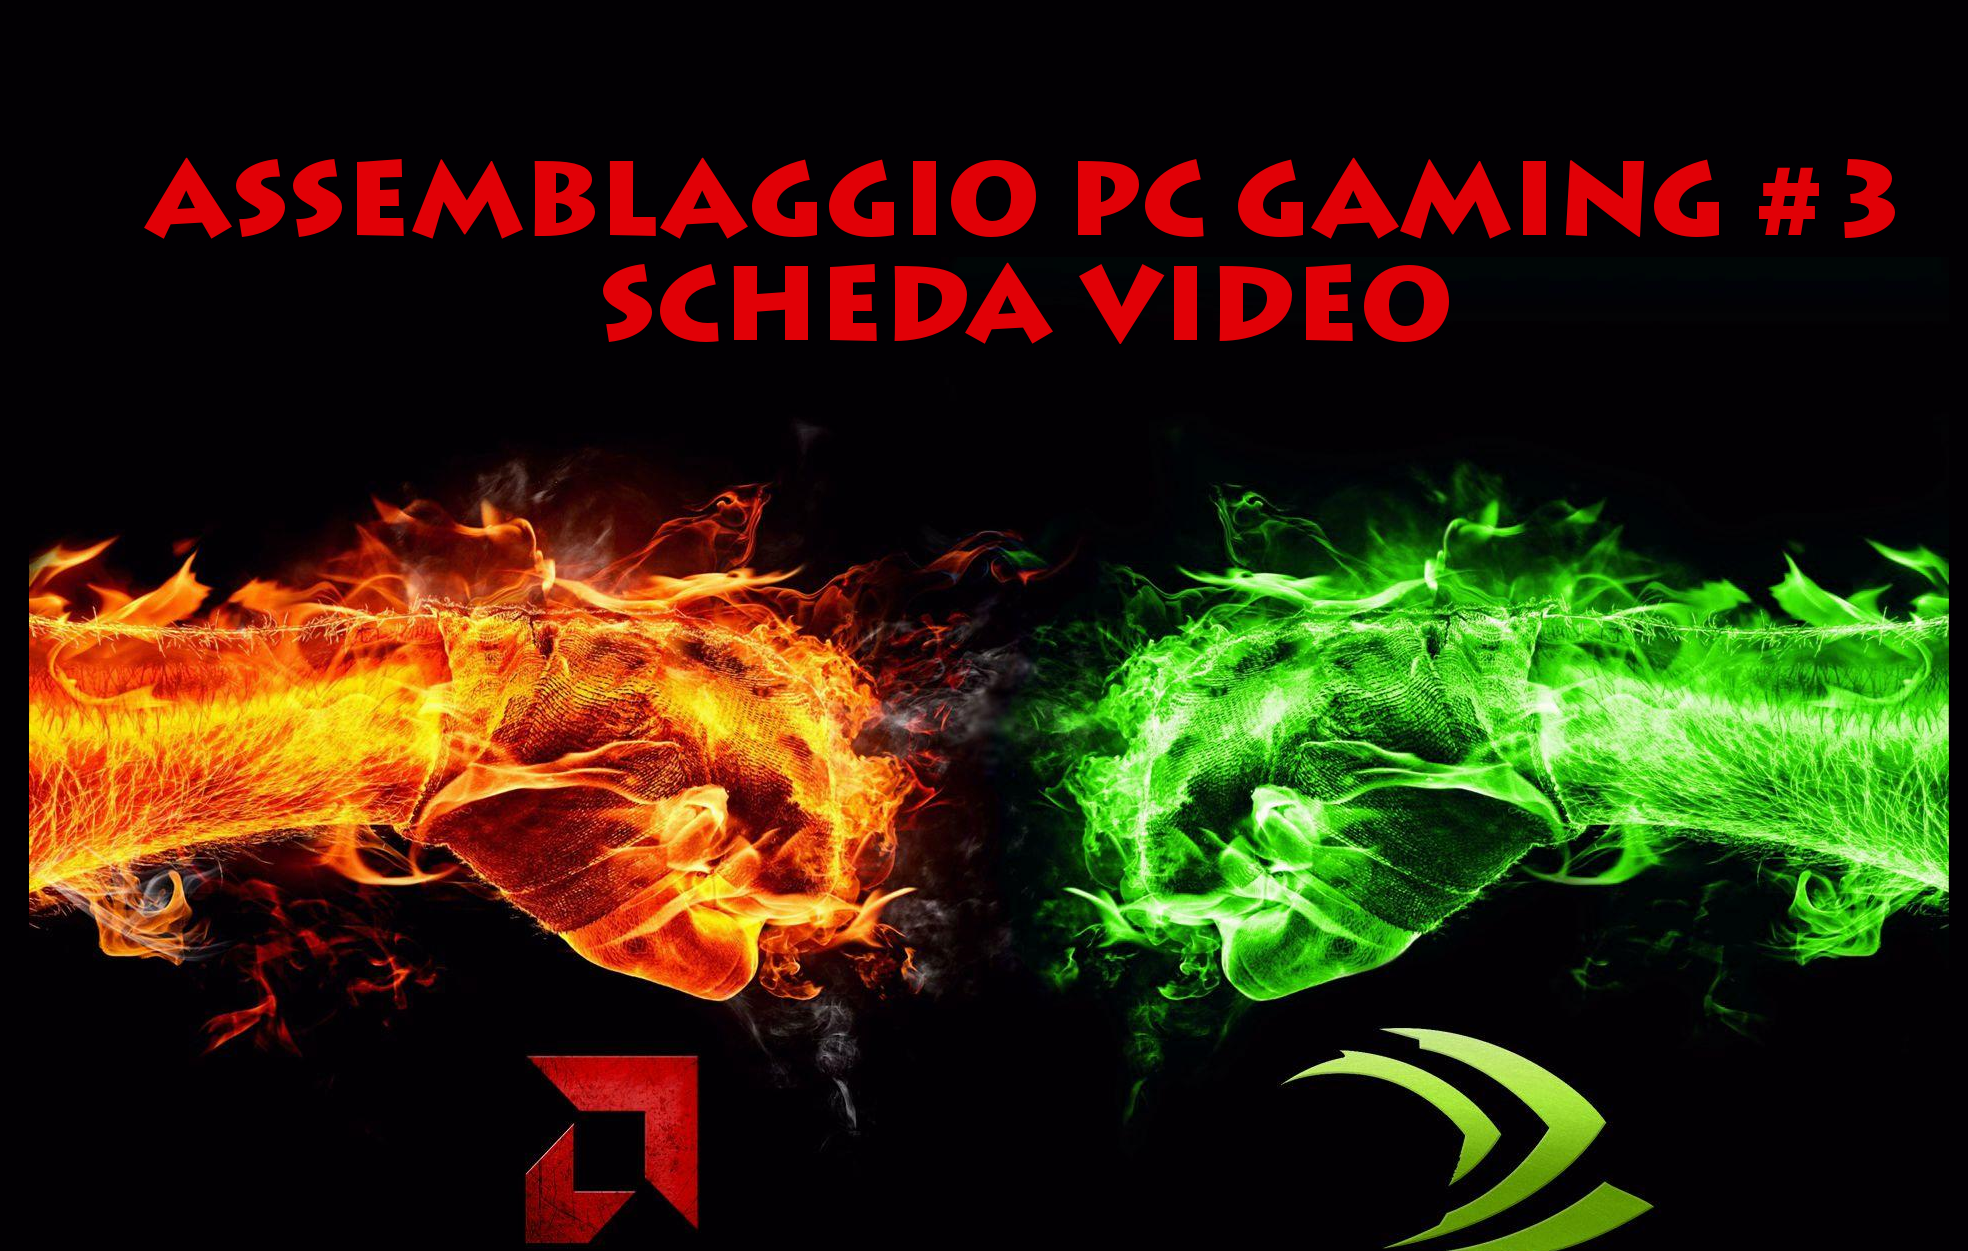 ASSEMBLAGGIO PC GAMING #3 - SCHEDA VIDEO